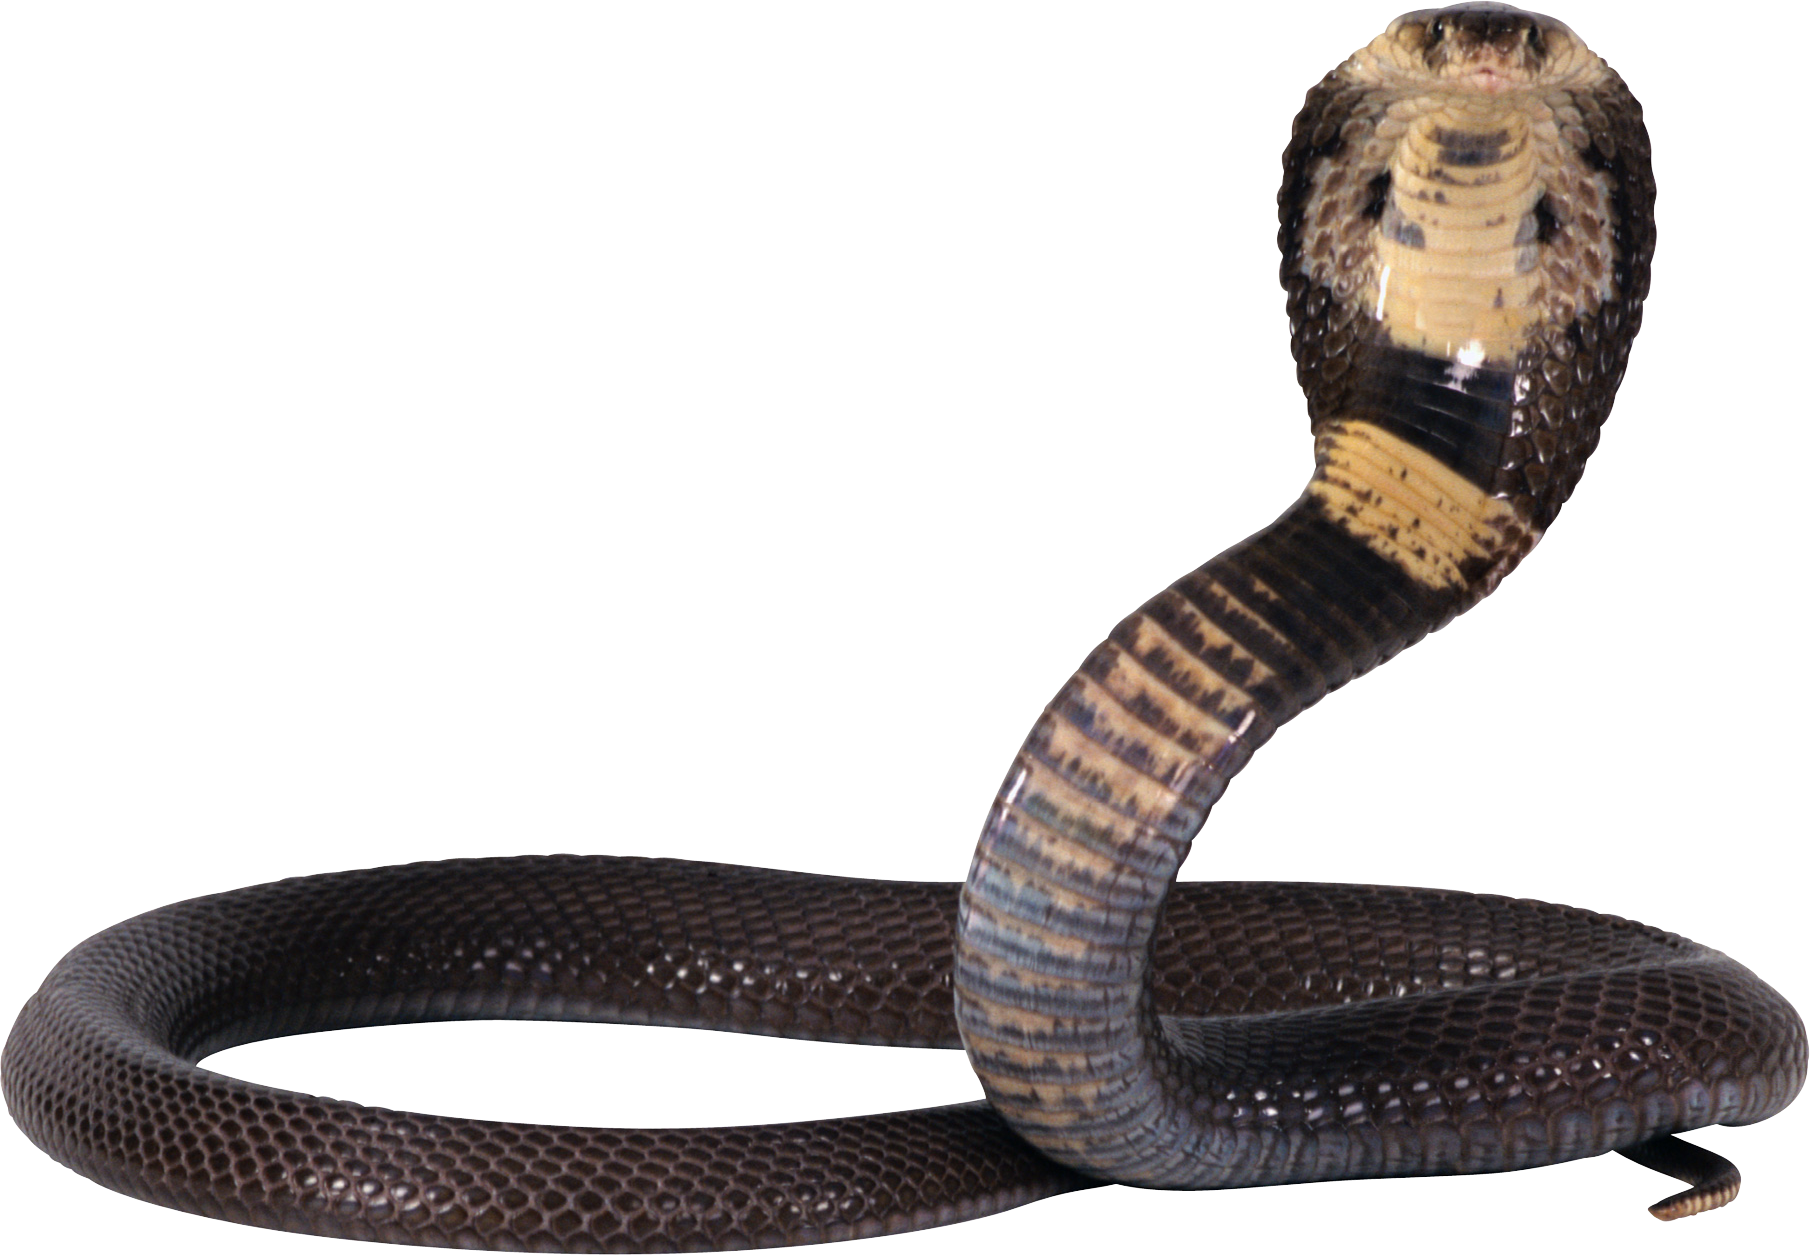 Clipart snake king snake. Eleven isolated stock photo